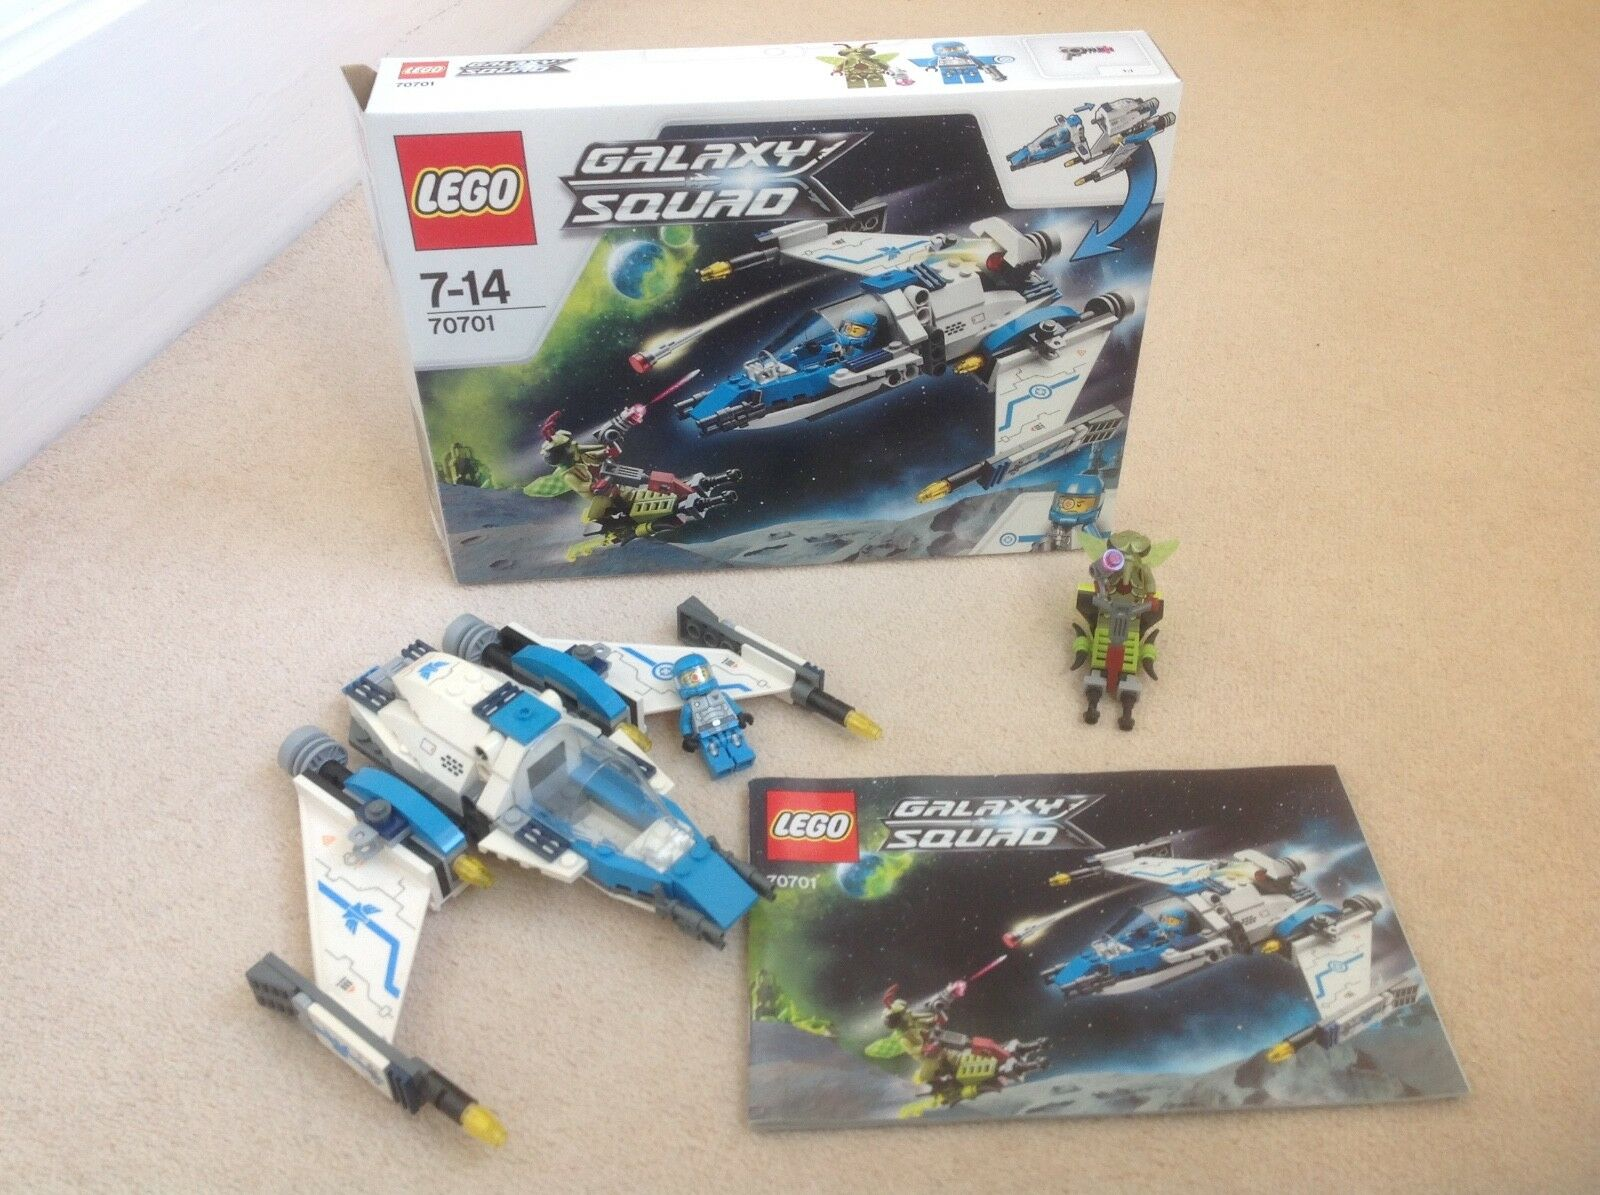 Lego Galaxy Squad (70701) Swarm Interceptor, boxed with intructions. Rare